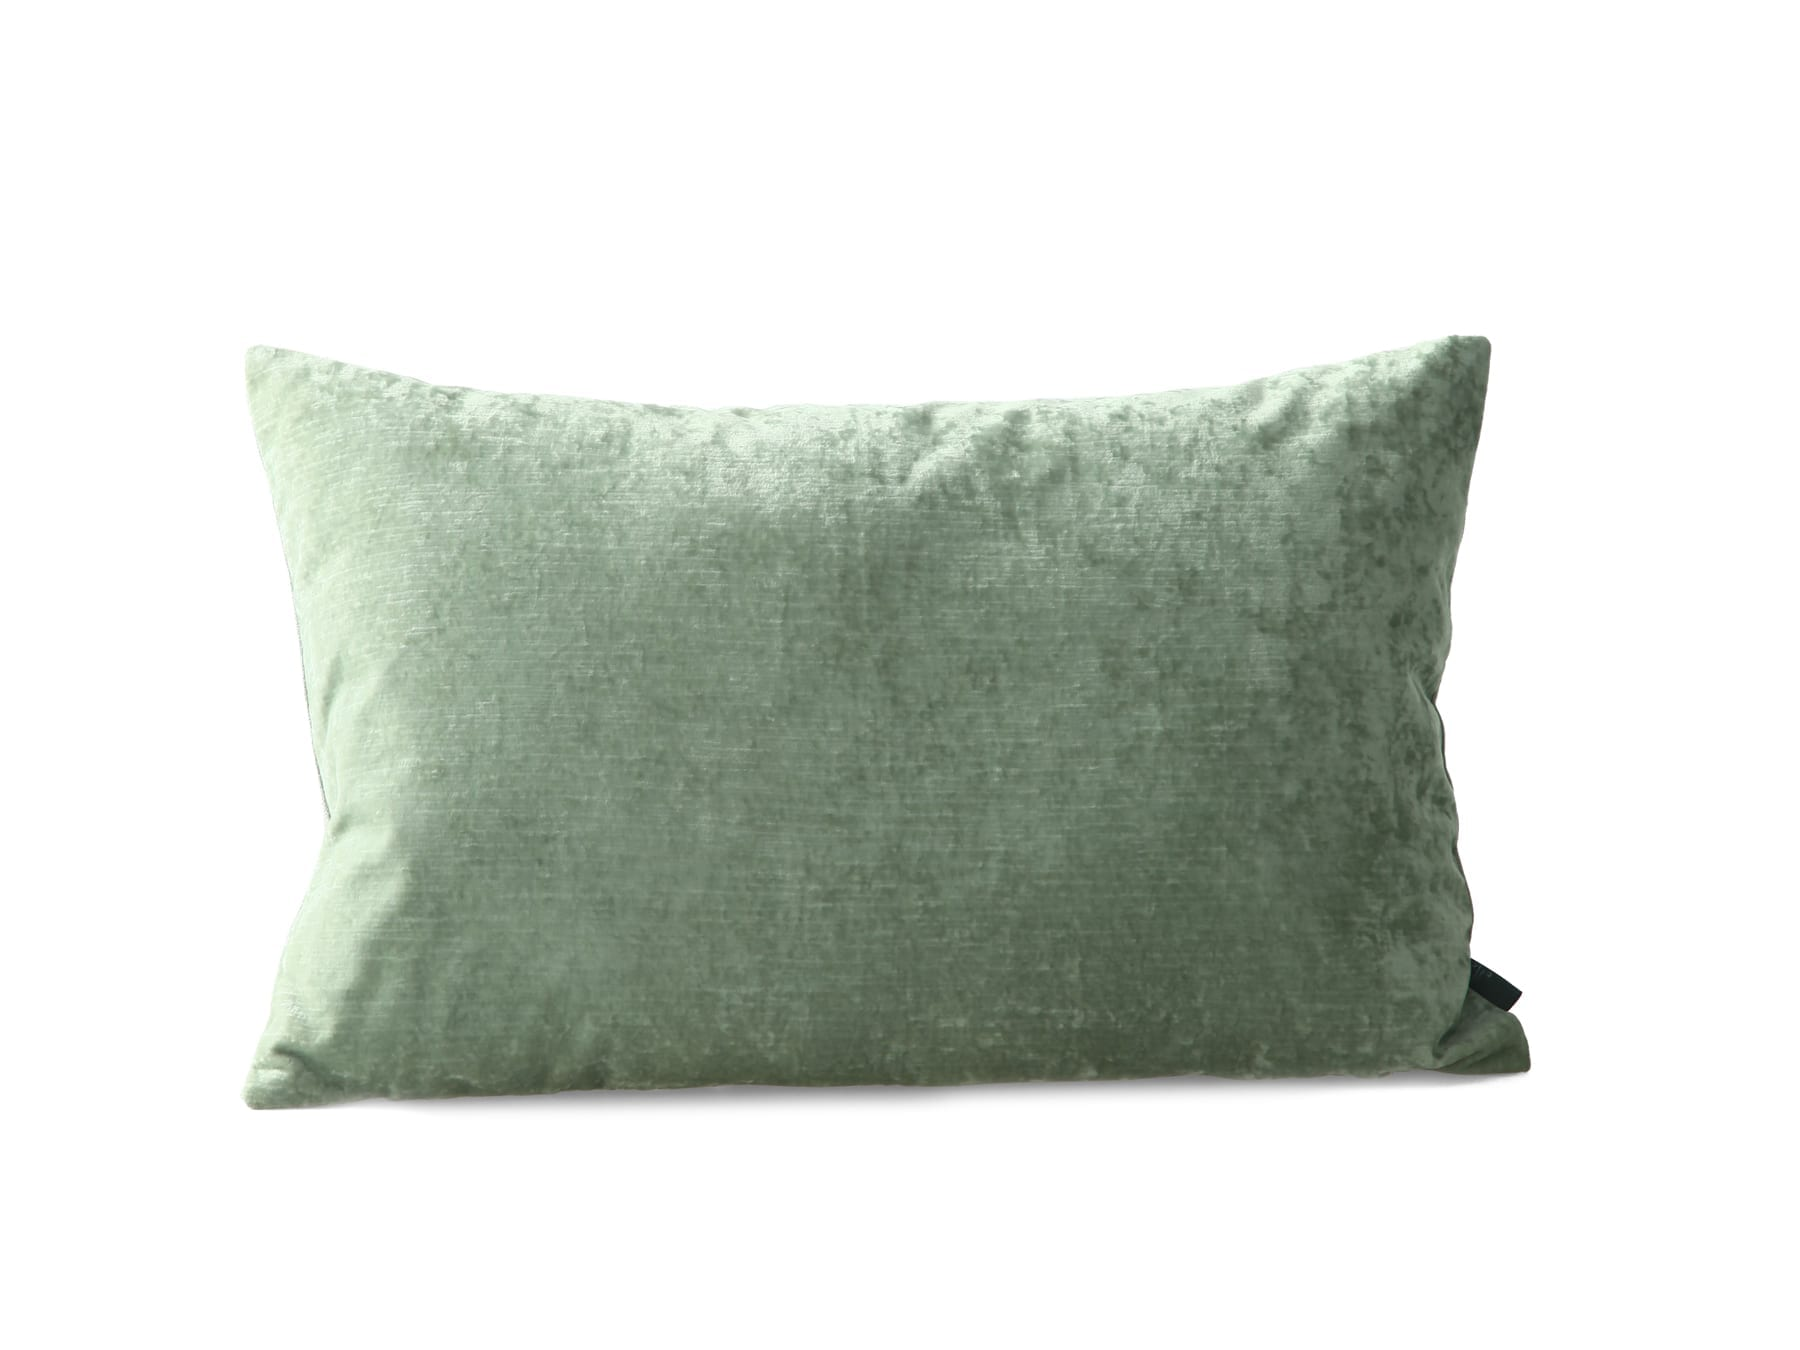 MM Linen Luxe Cushion in Seafoam available at McKenzie & Willis